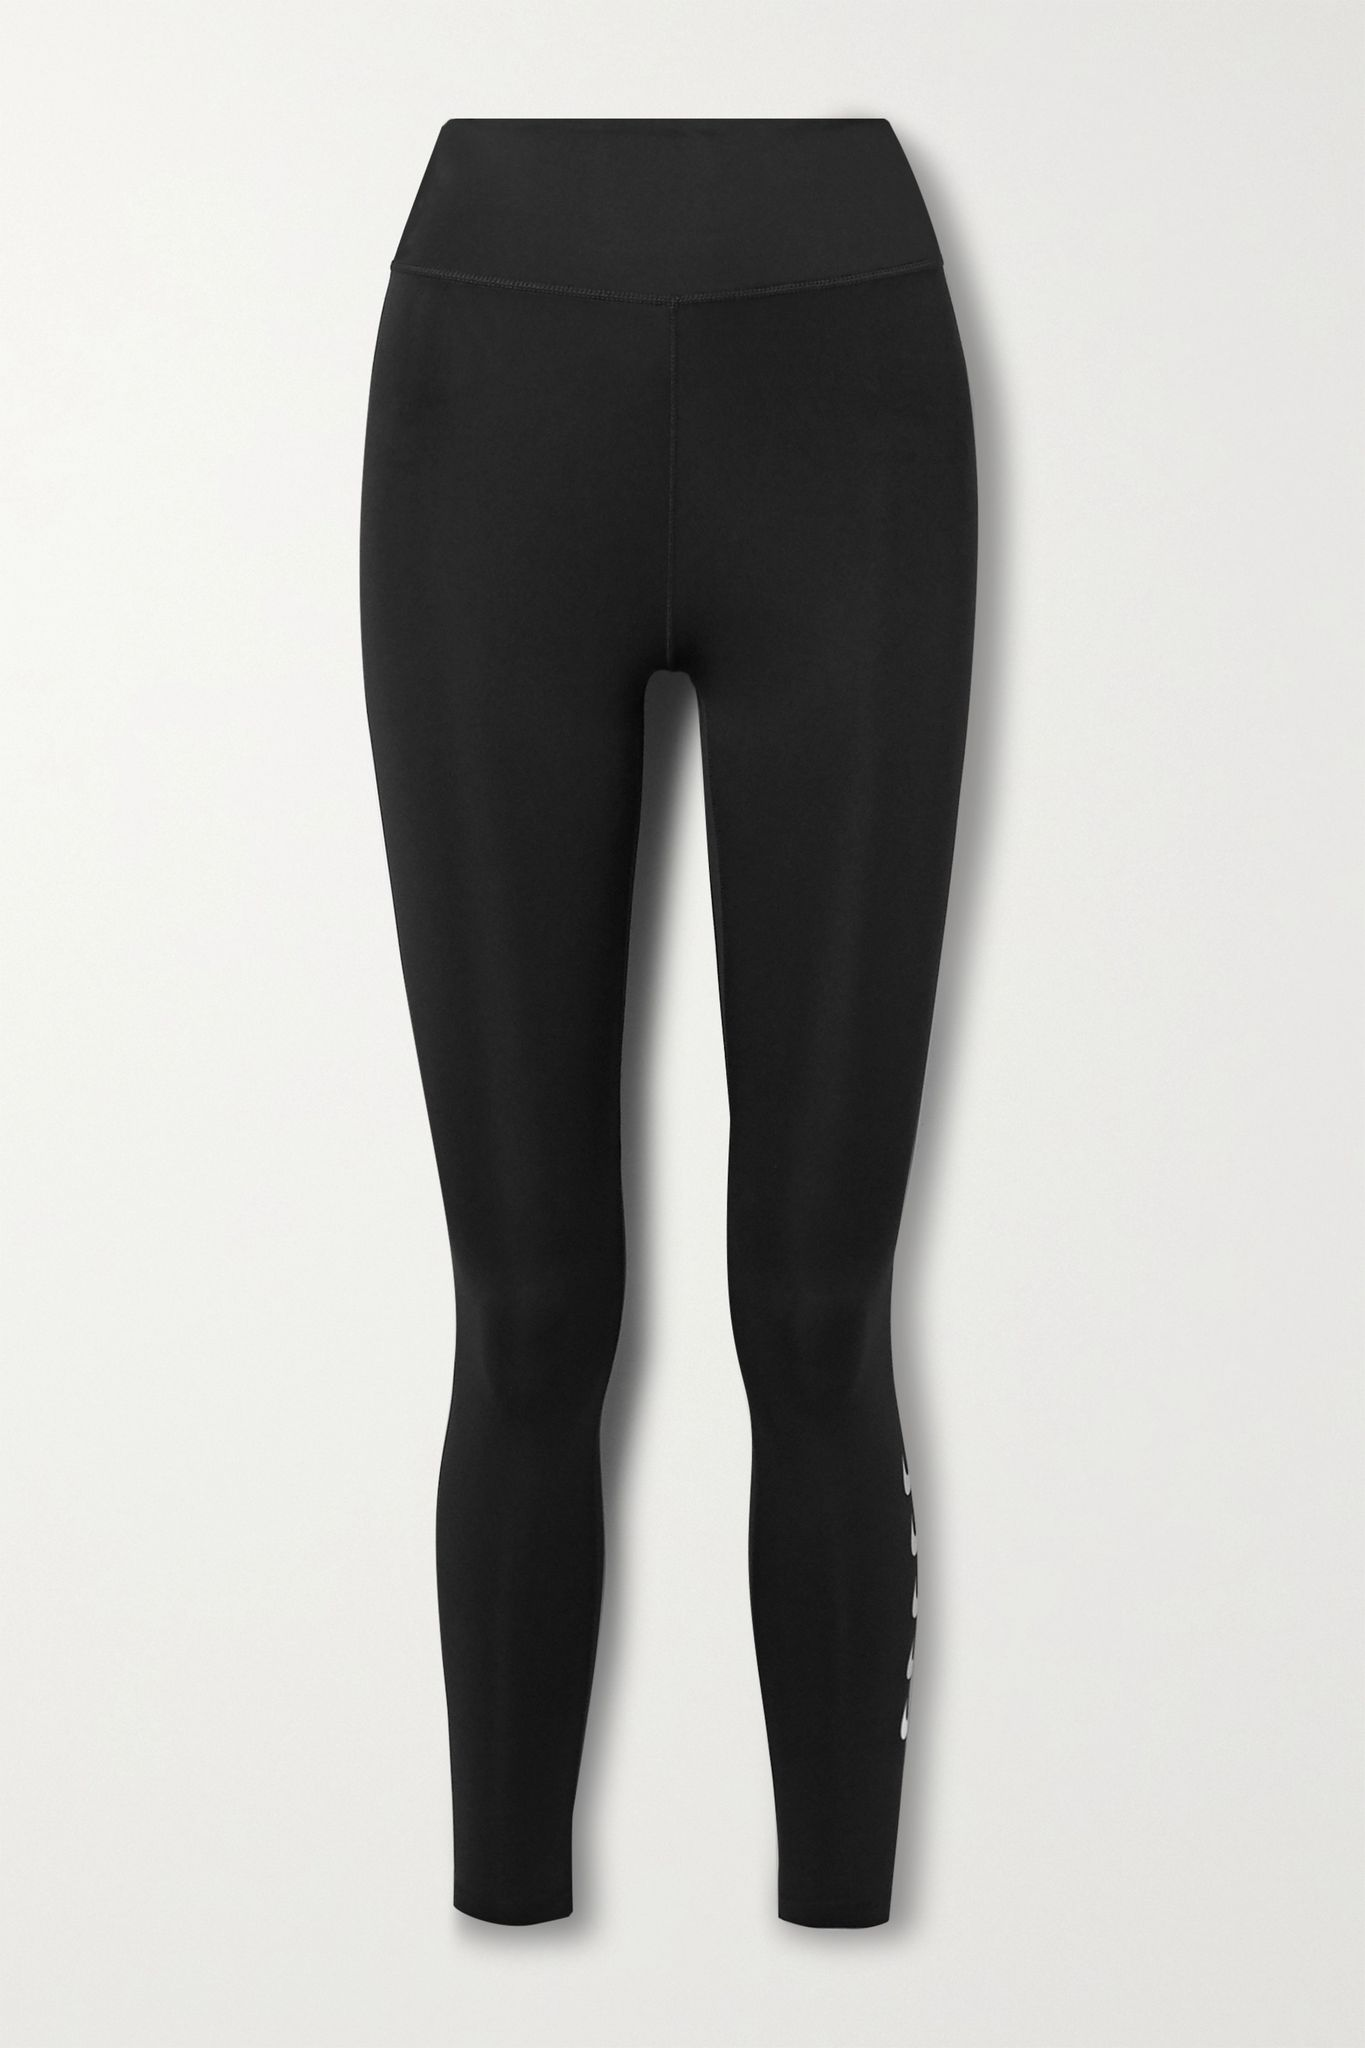 Swoosh Run printed Dri-FIT leggings by Nike, available on net-a-porter.com for $60 Kendall Jenner Pants SIMILAR PRODUCT